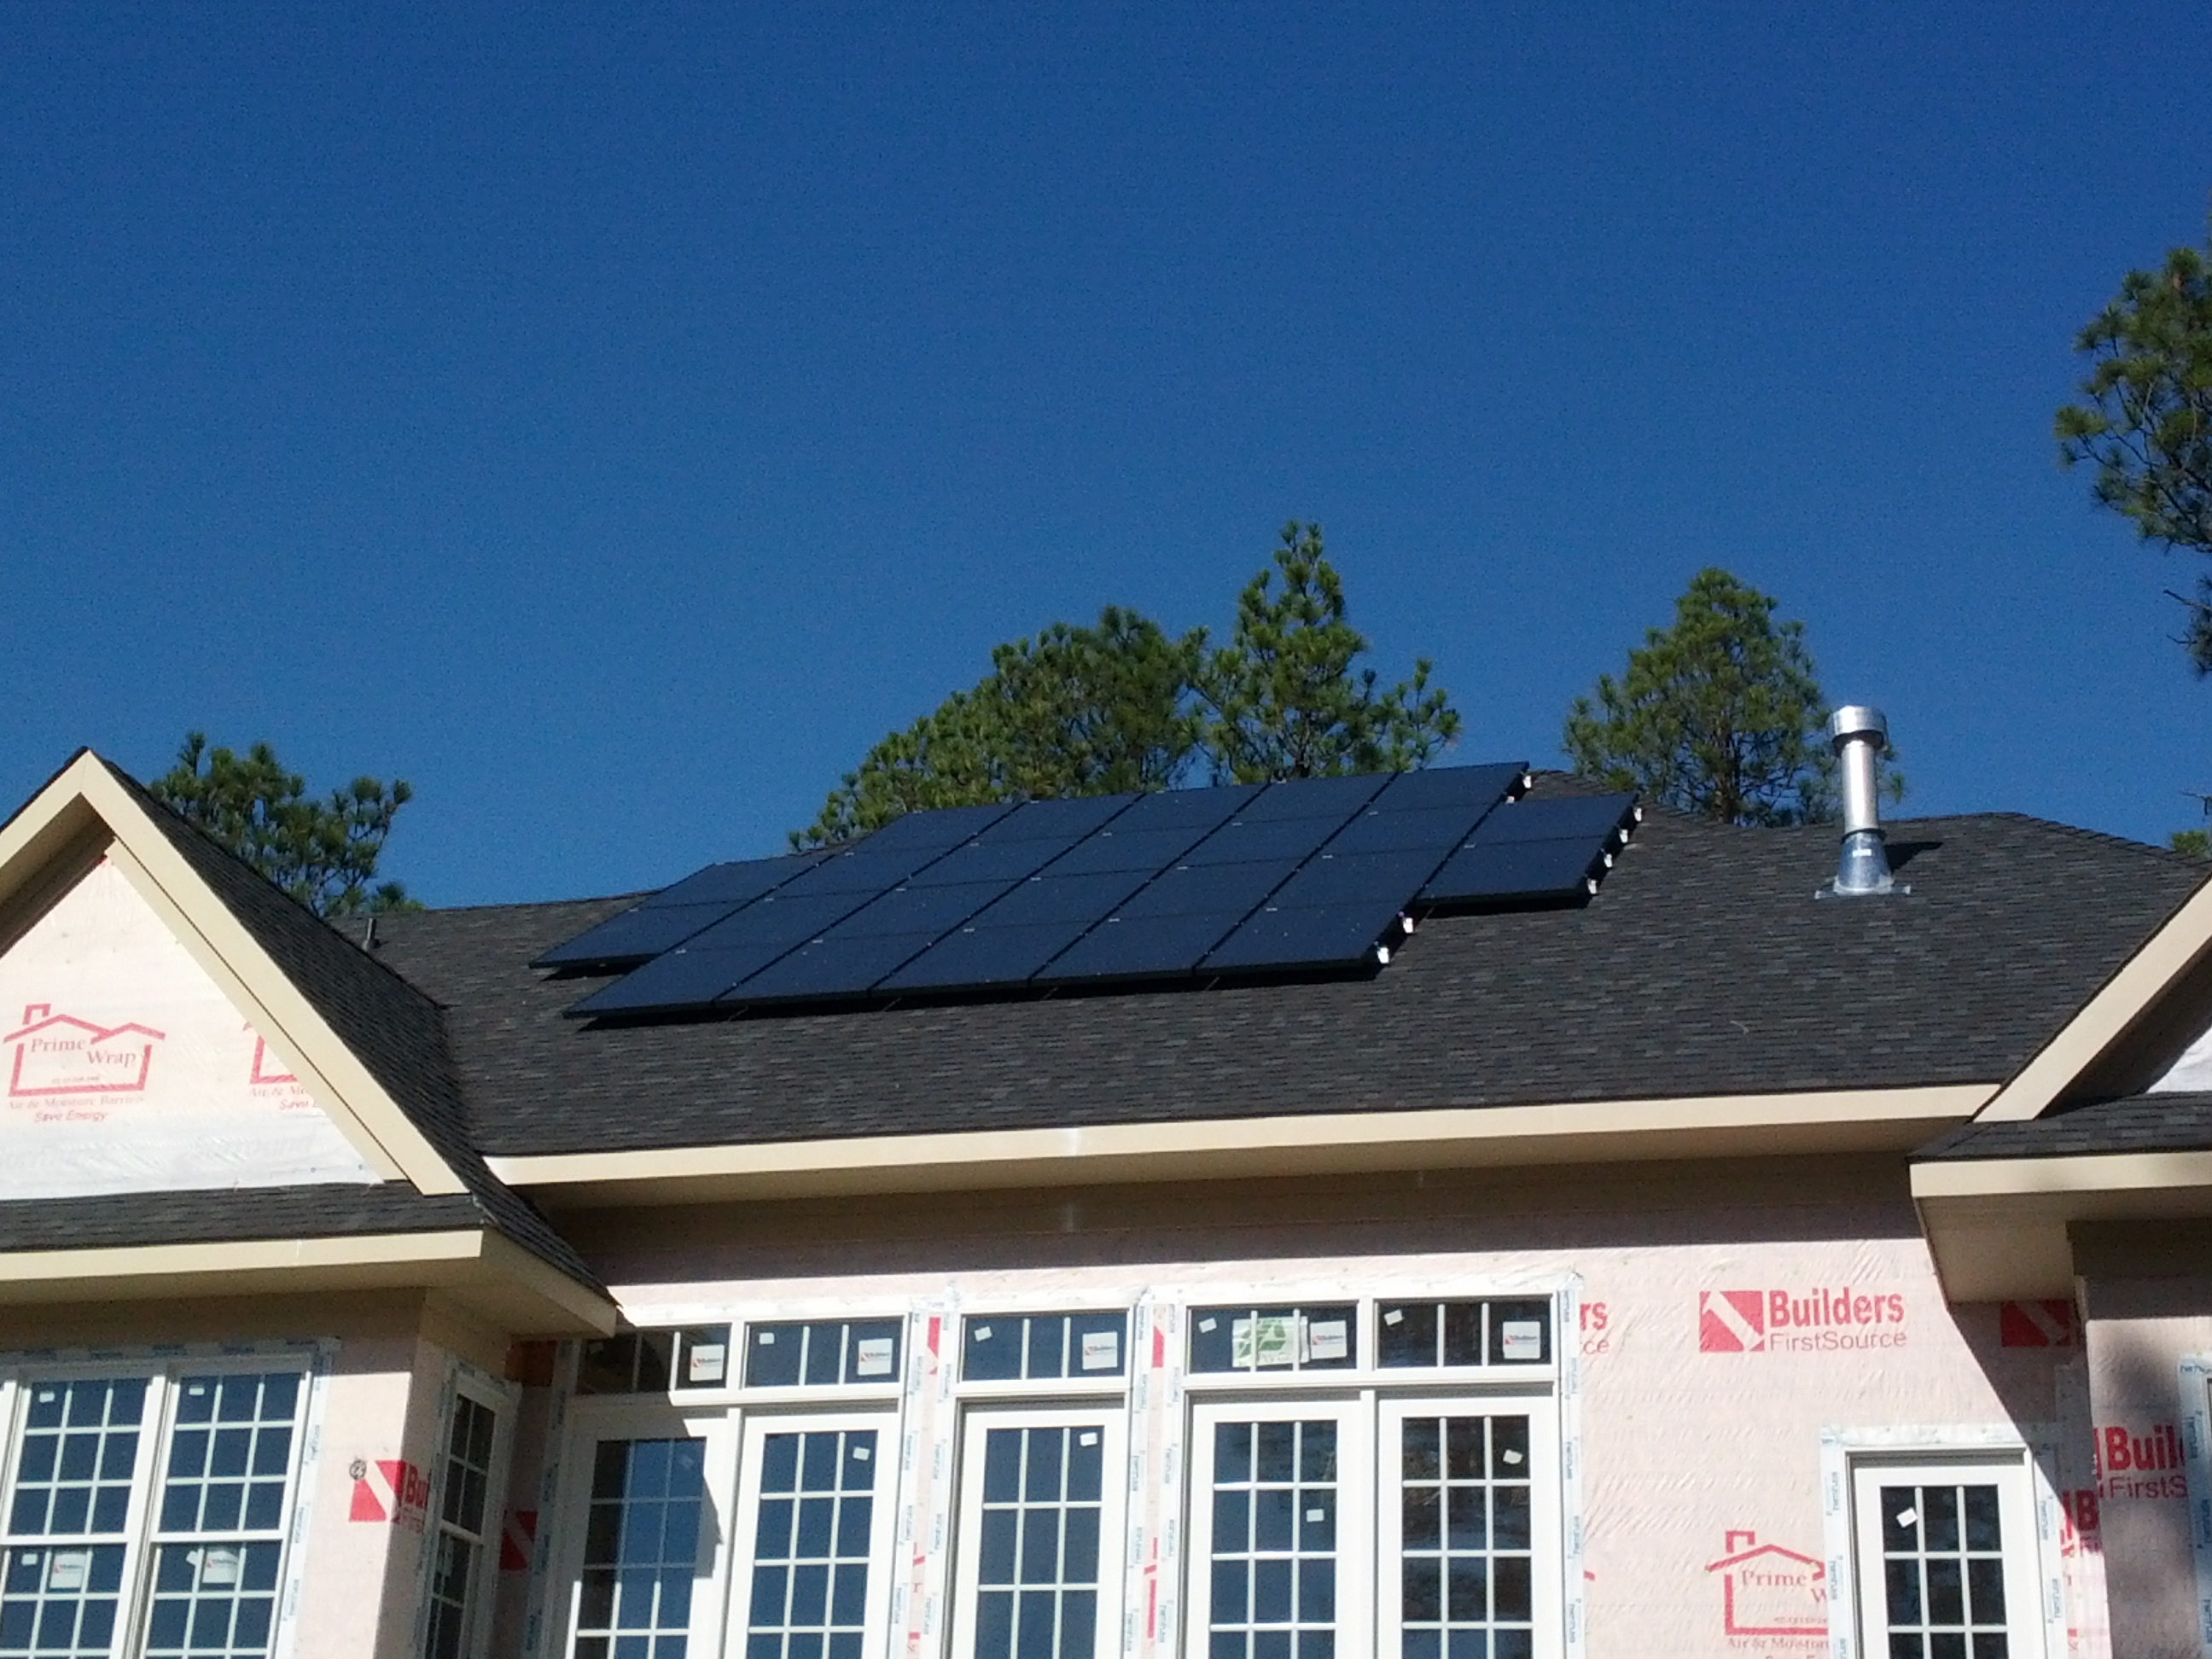 Gsp Integrating Solar Pv Into New Home Construction